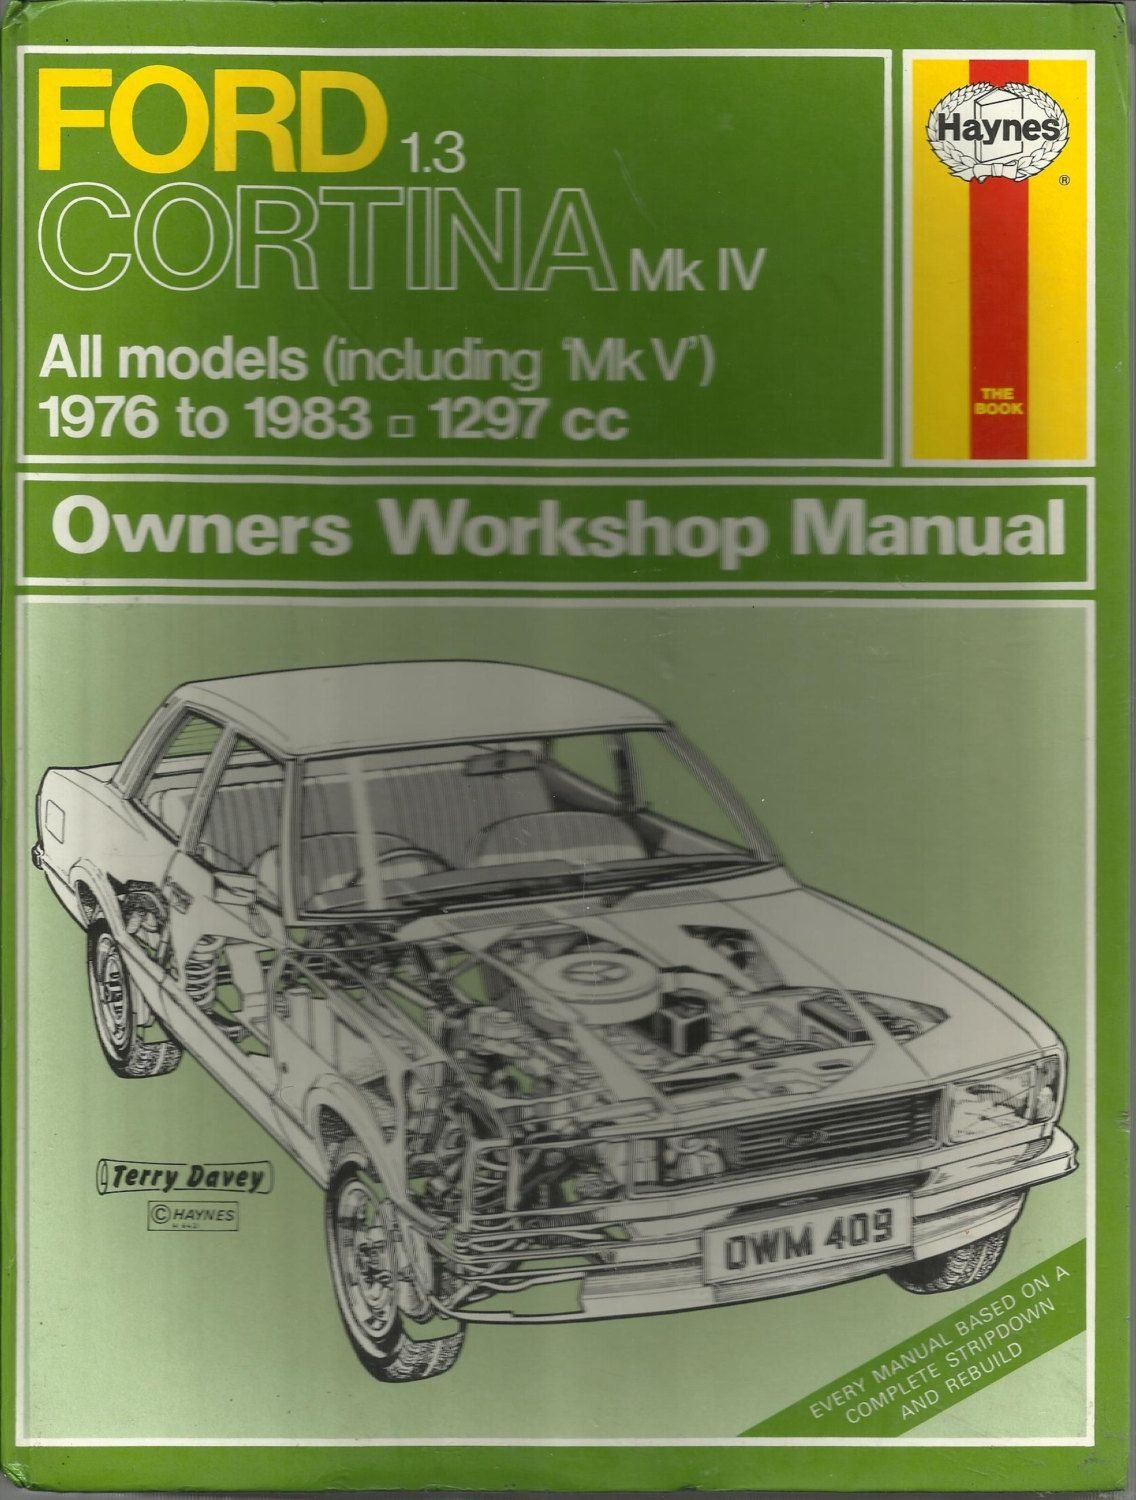 Ford Cortina 1 3 Mk Iv Owner S Workshop Manual Car Handbook 1976 To 1983 Purchase In Store Here Http Www Europeanvintageem Manual Car Ford Granada Manual